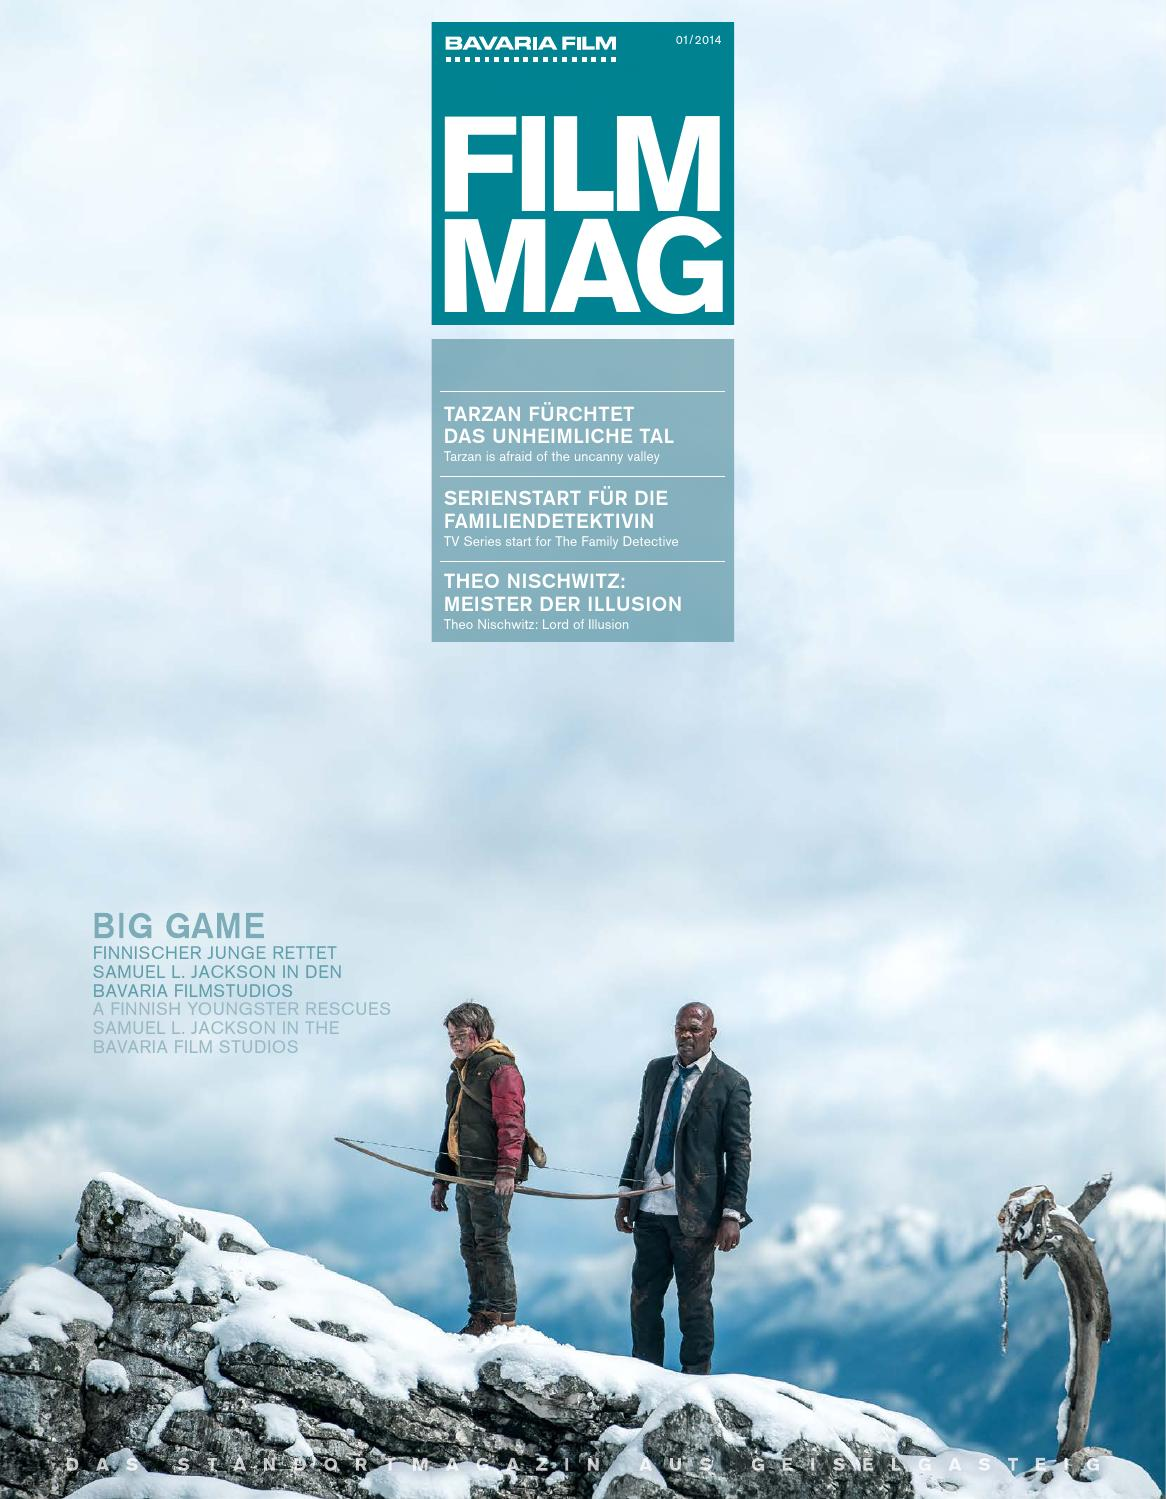 Bavaria Film FilmMag 01/2014 by filmmag - issuu